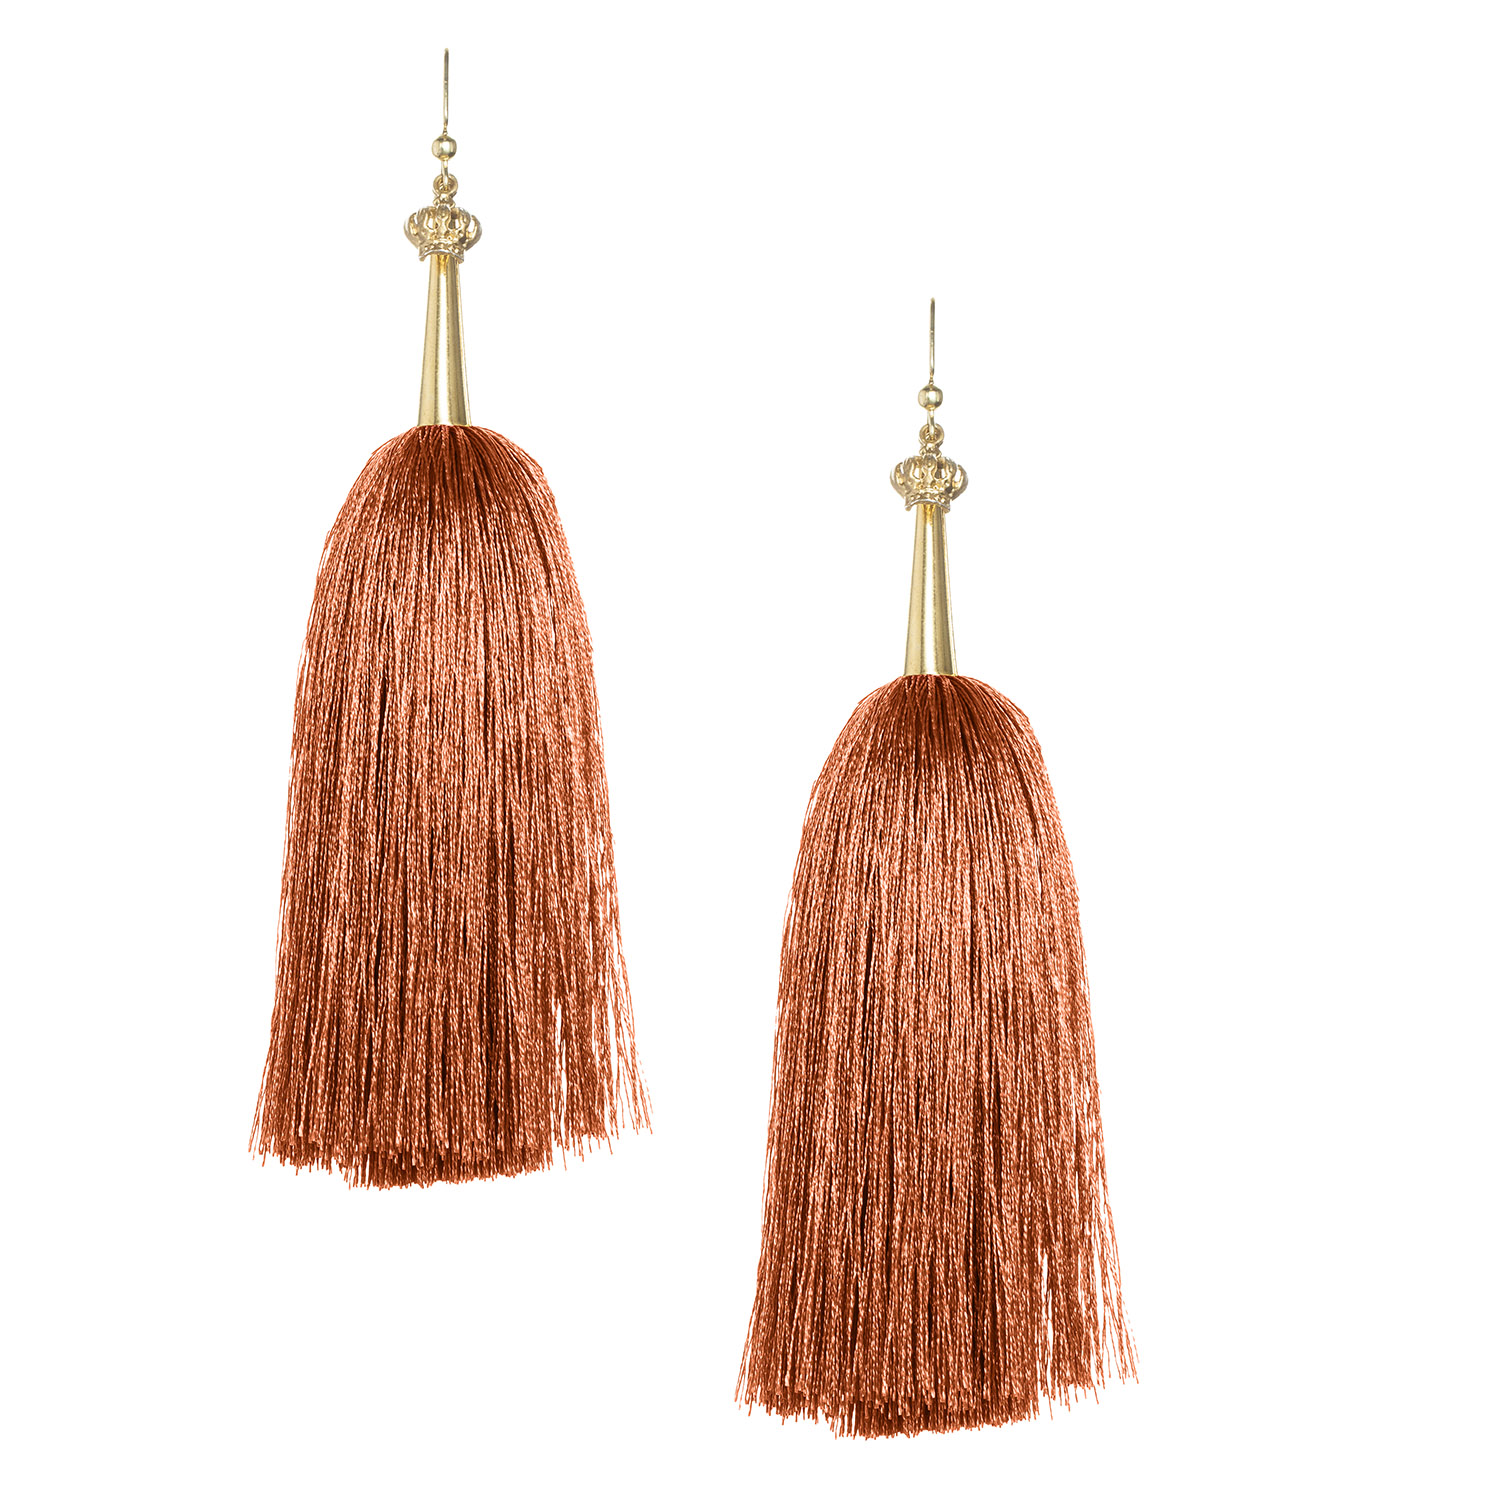 Copper Feather Silk Tassel Earrings with Gold Cap